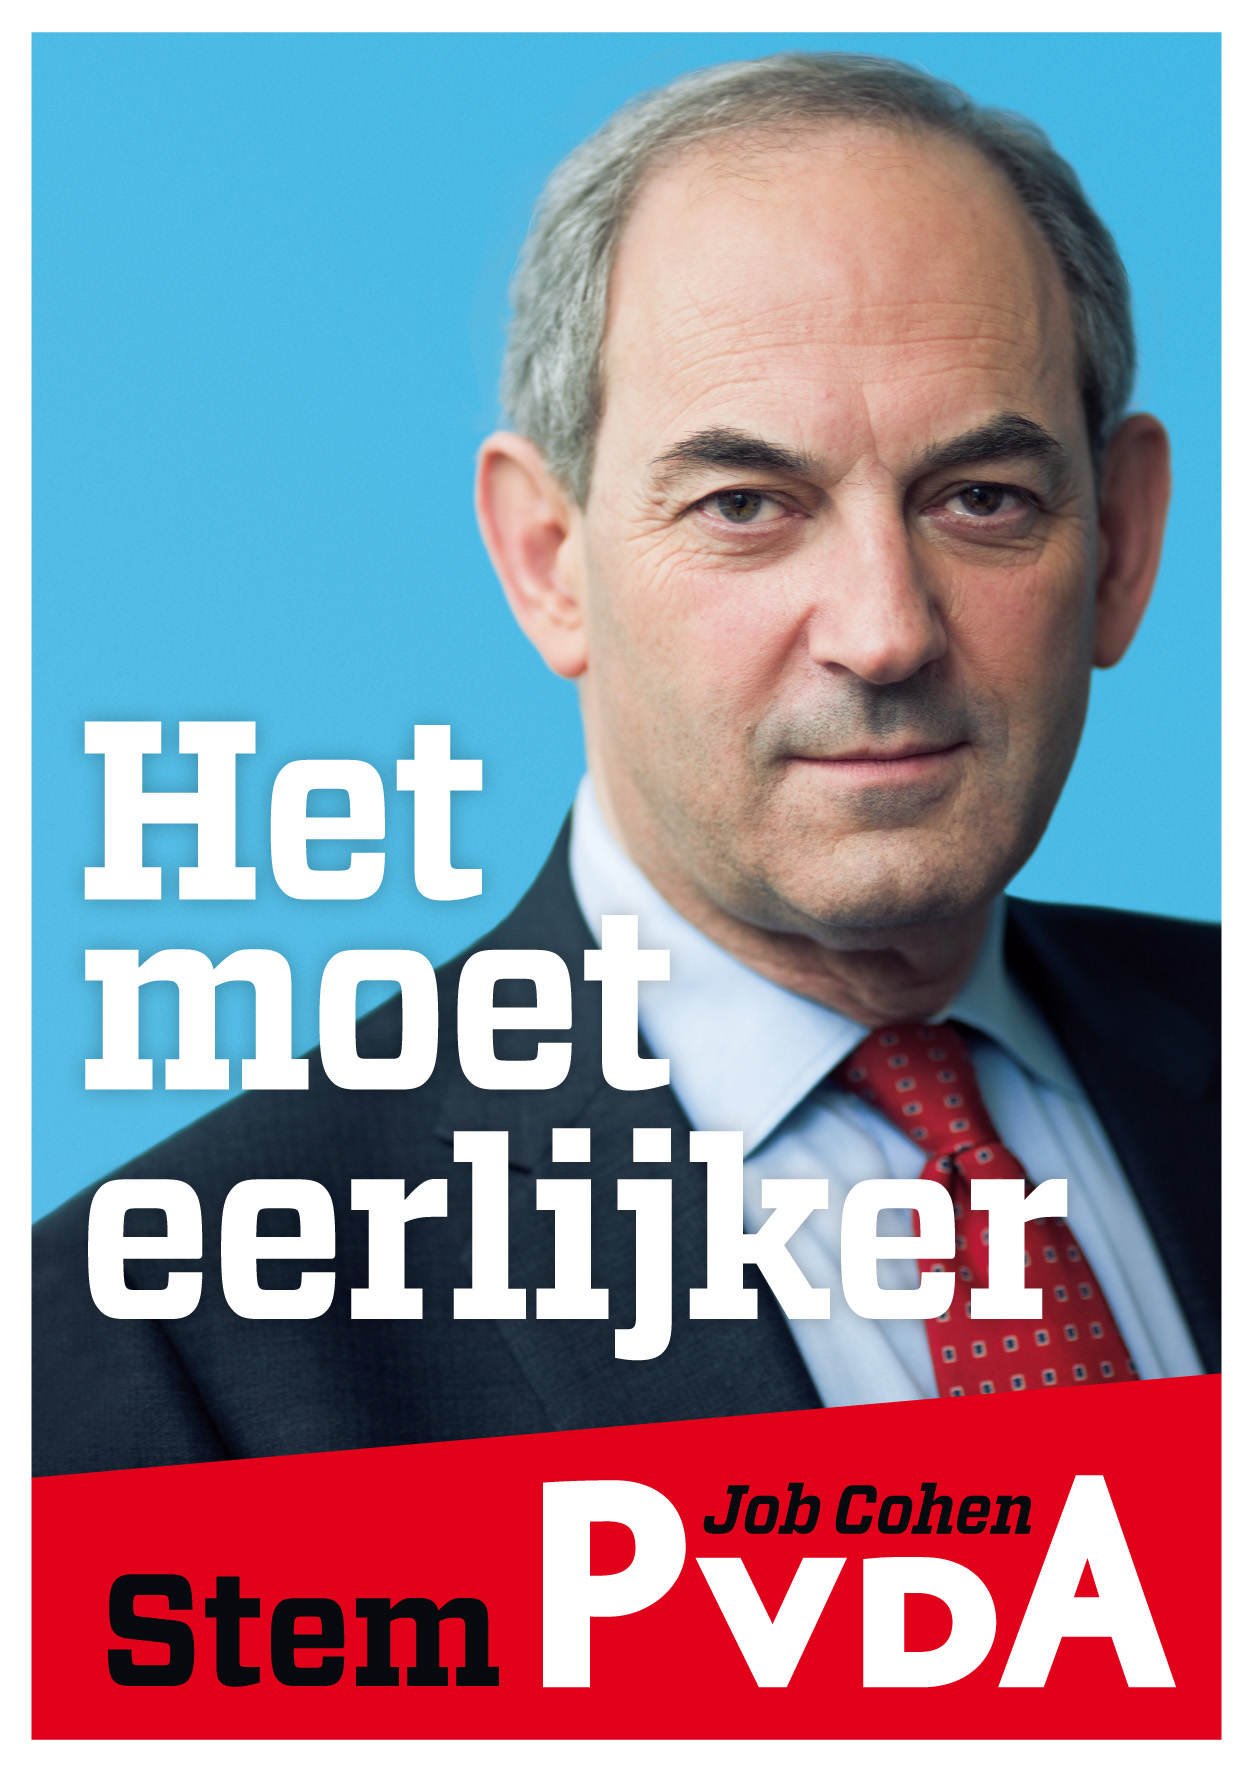 File:2010 election poster Poster PvdA2.jpg - Wikimedia Commons